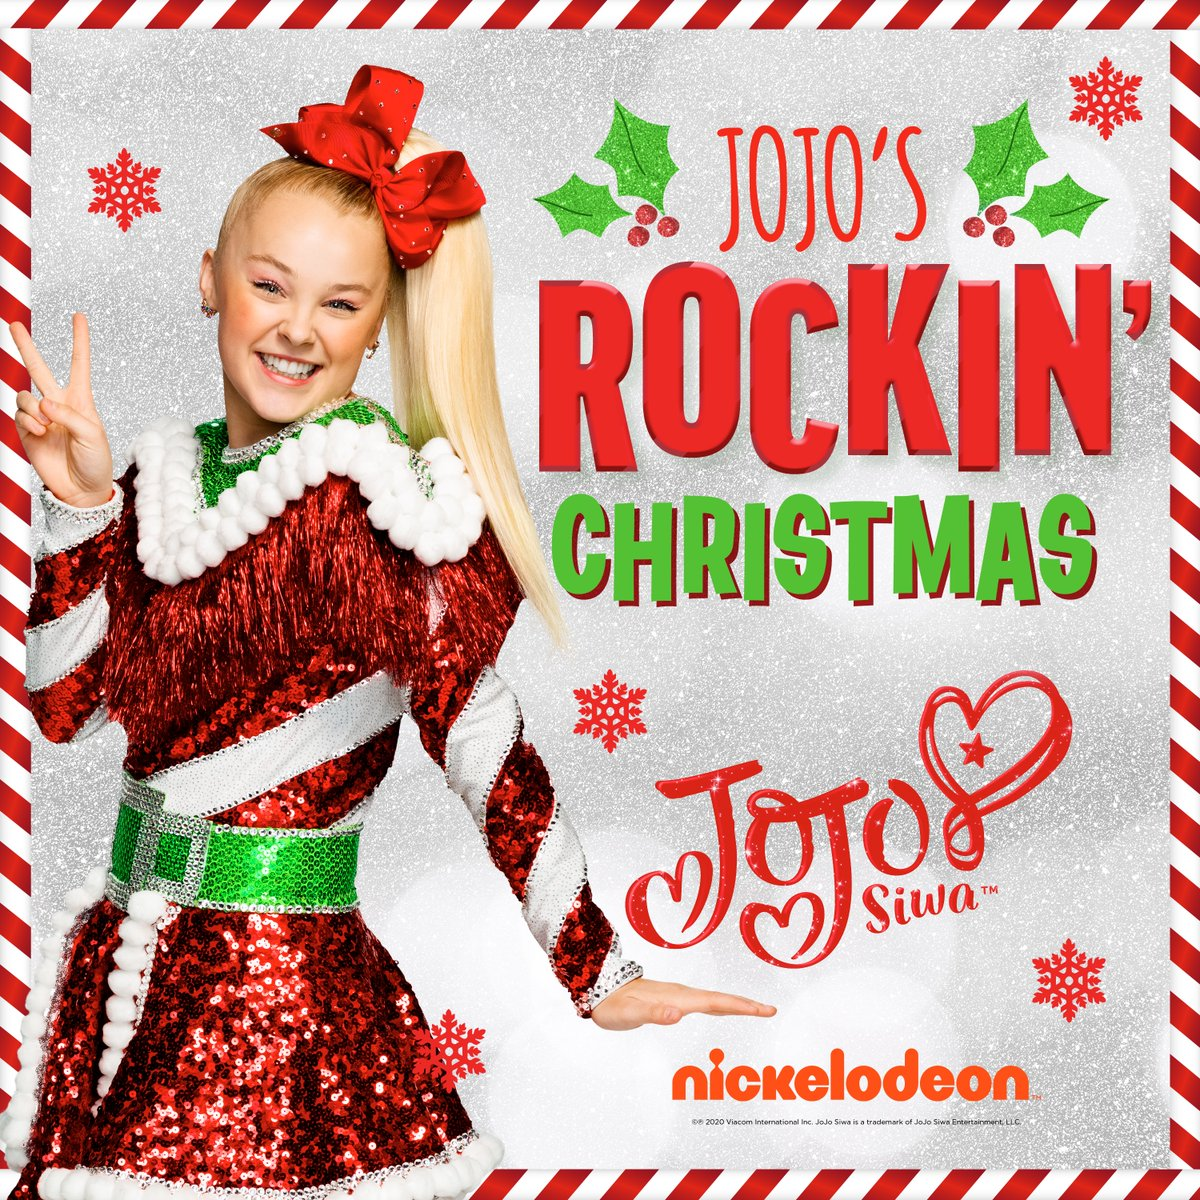 """We're excited for @itsjojosiwa's rescheduled show at Rupp Arena next July! While we wait, get ready for the holidays with """"JoJo's Rockin' Christmas,"""" a new four-song EP just released! Listen here:"""